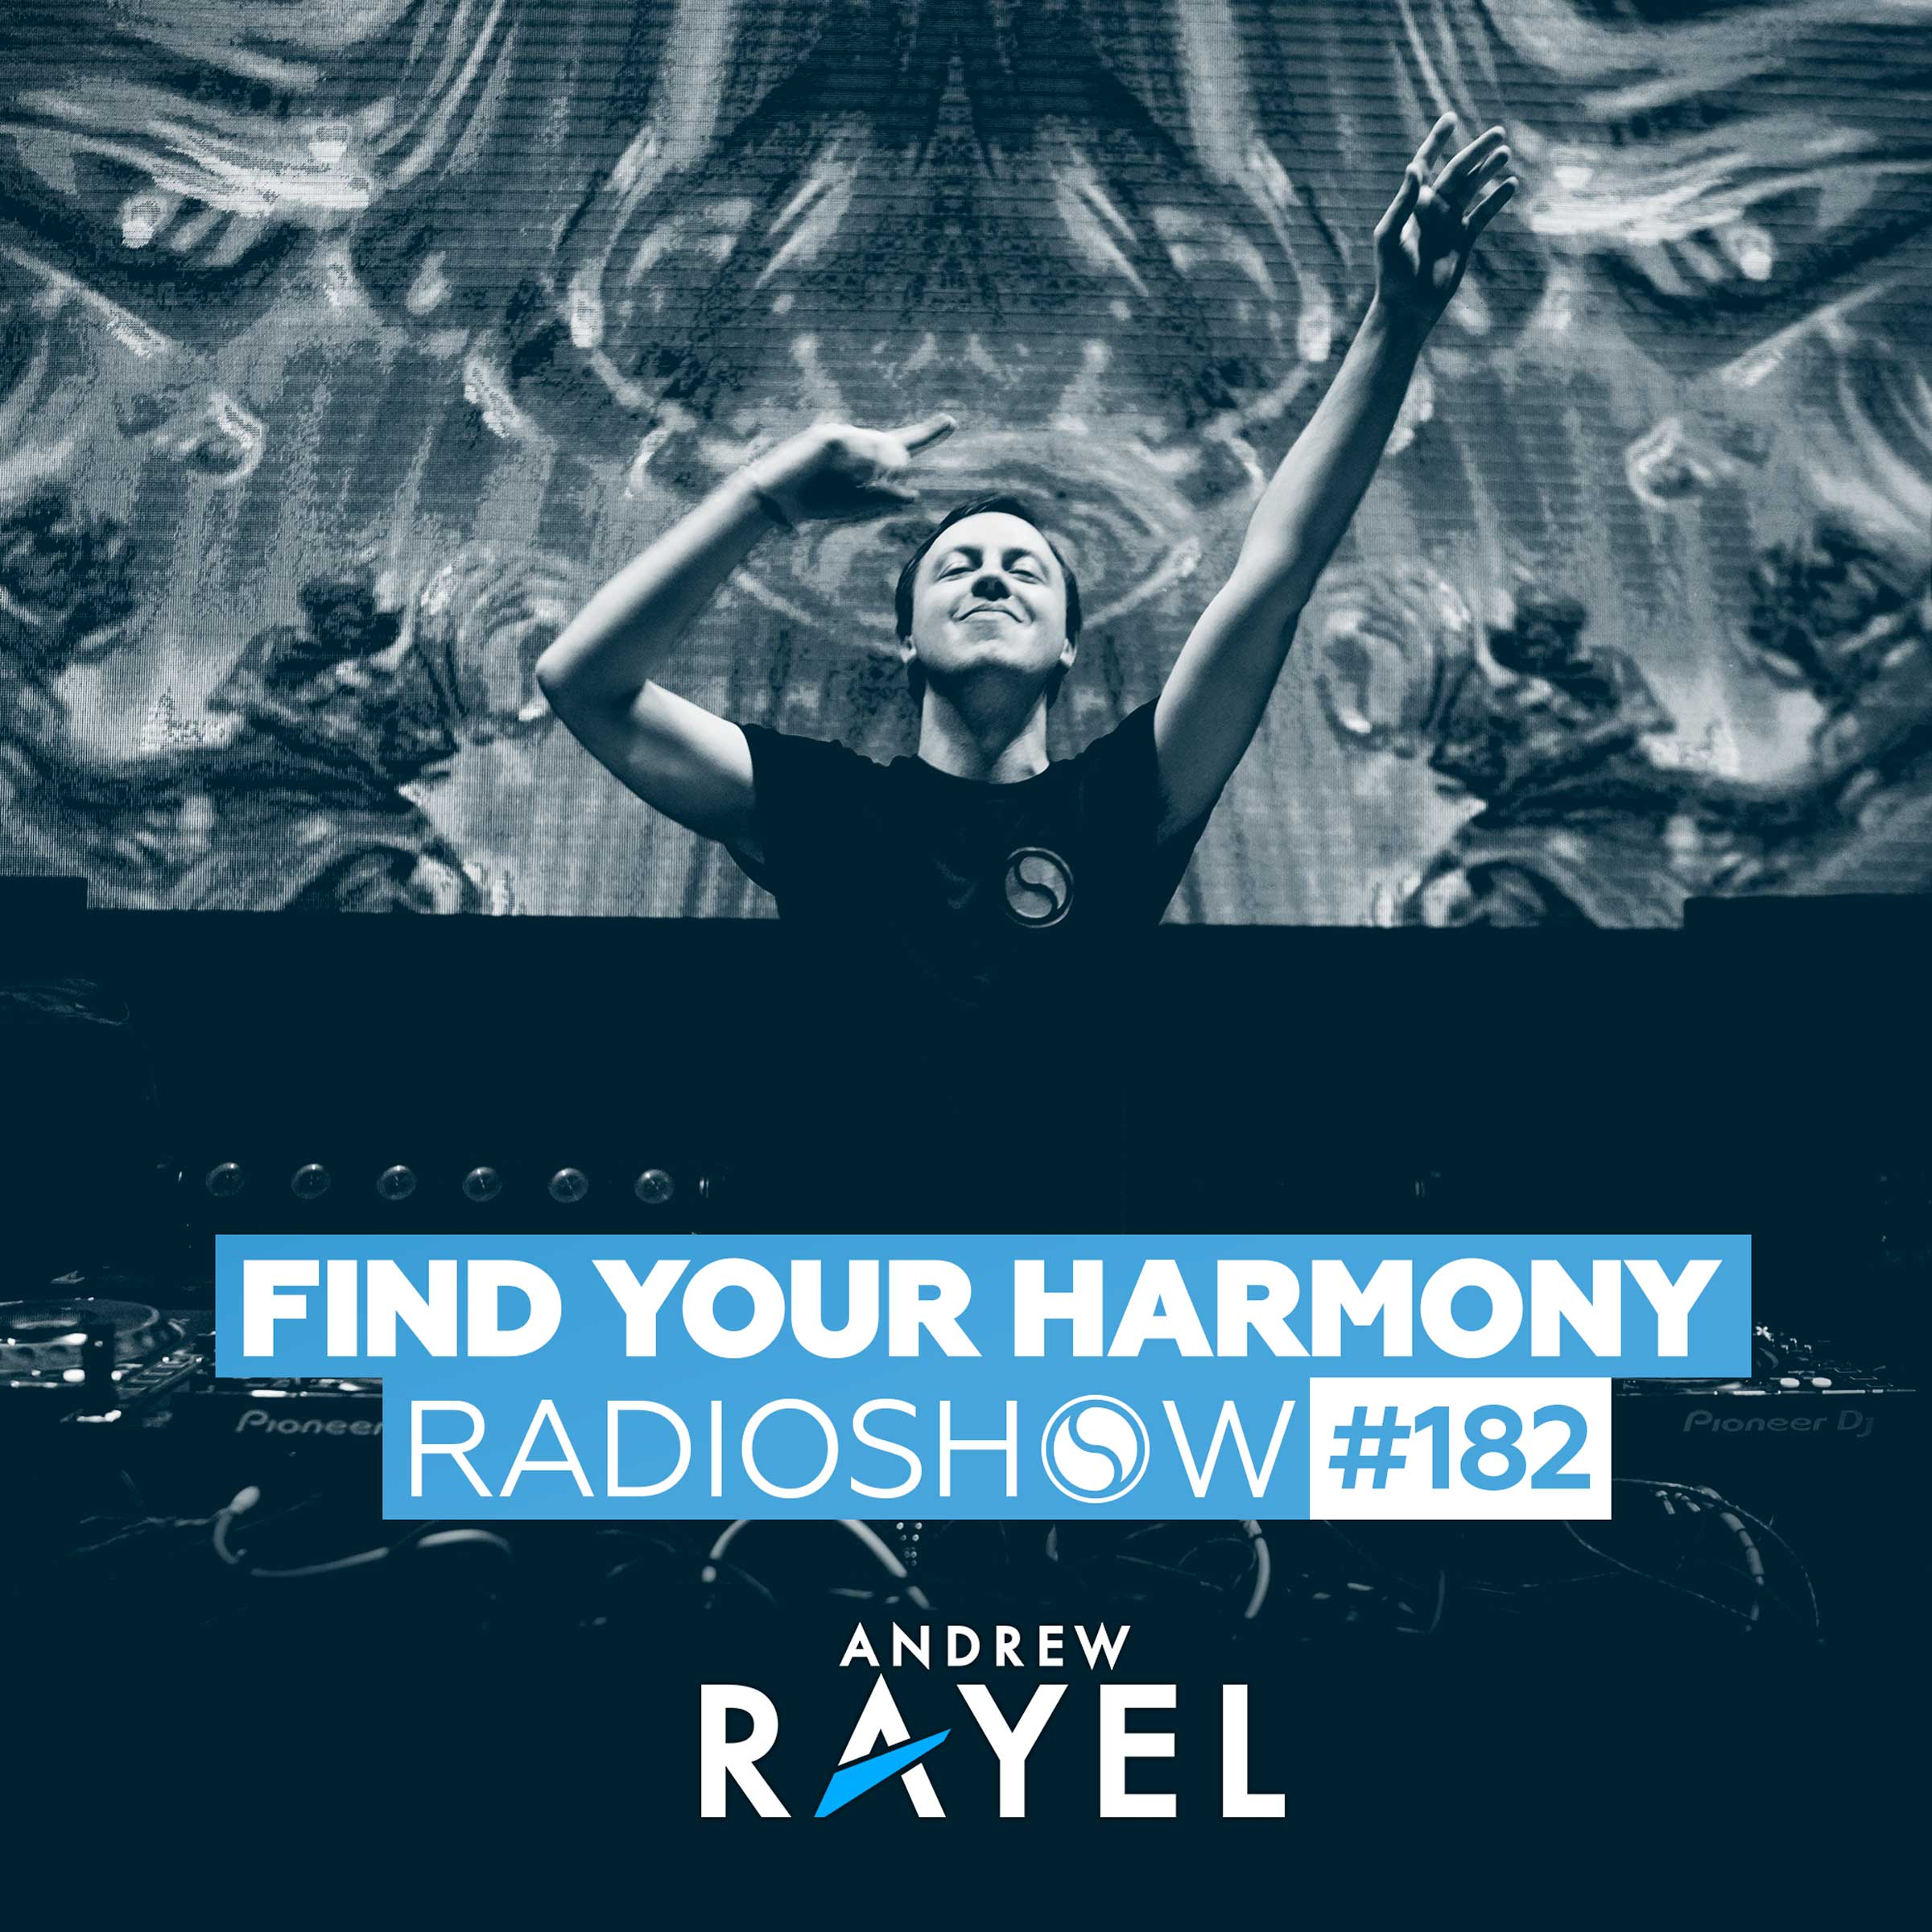 Find Your Harmony Radioshow #147